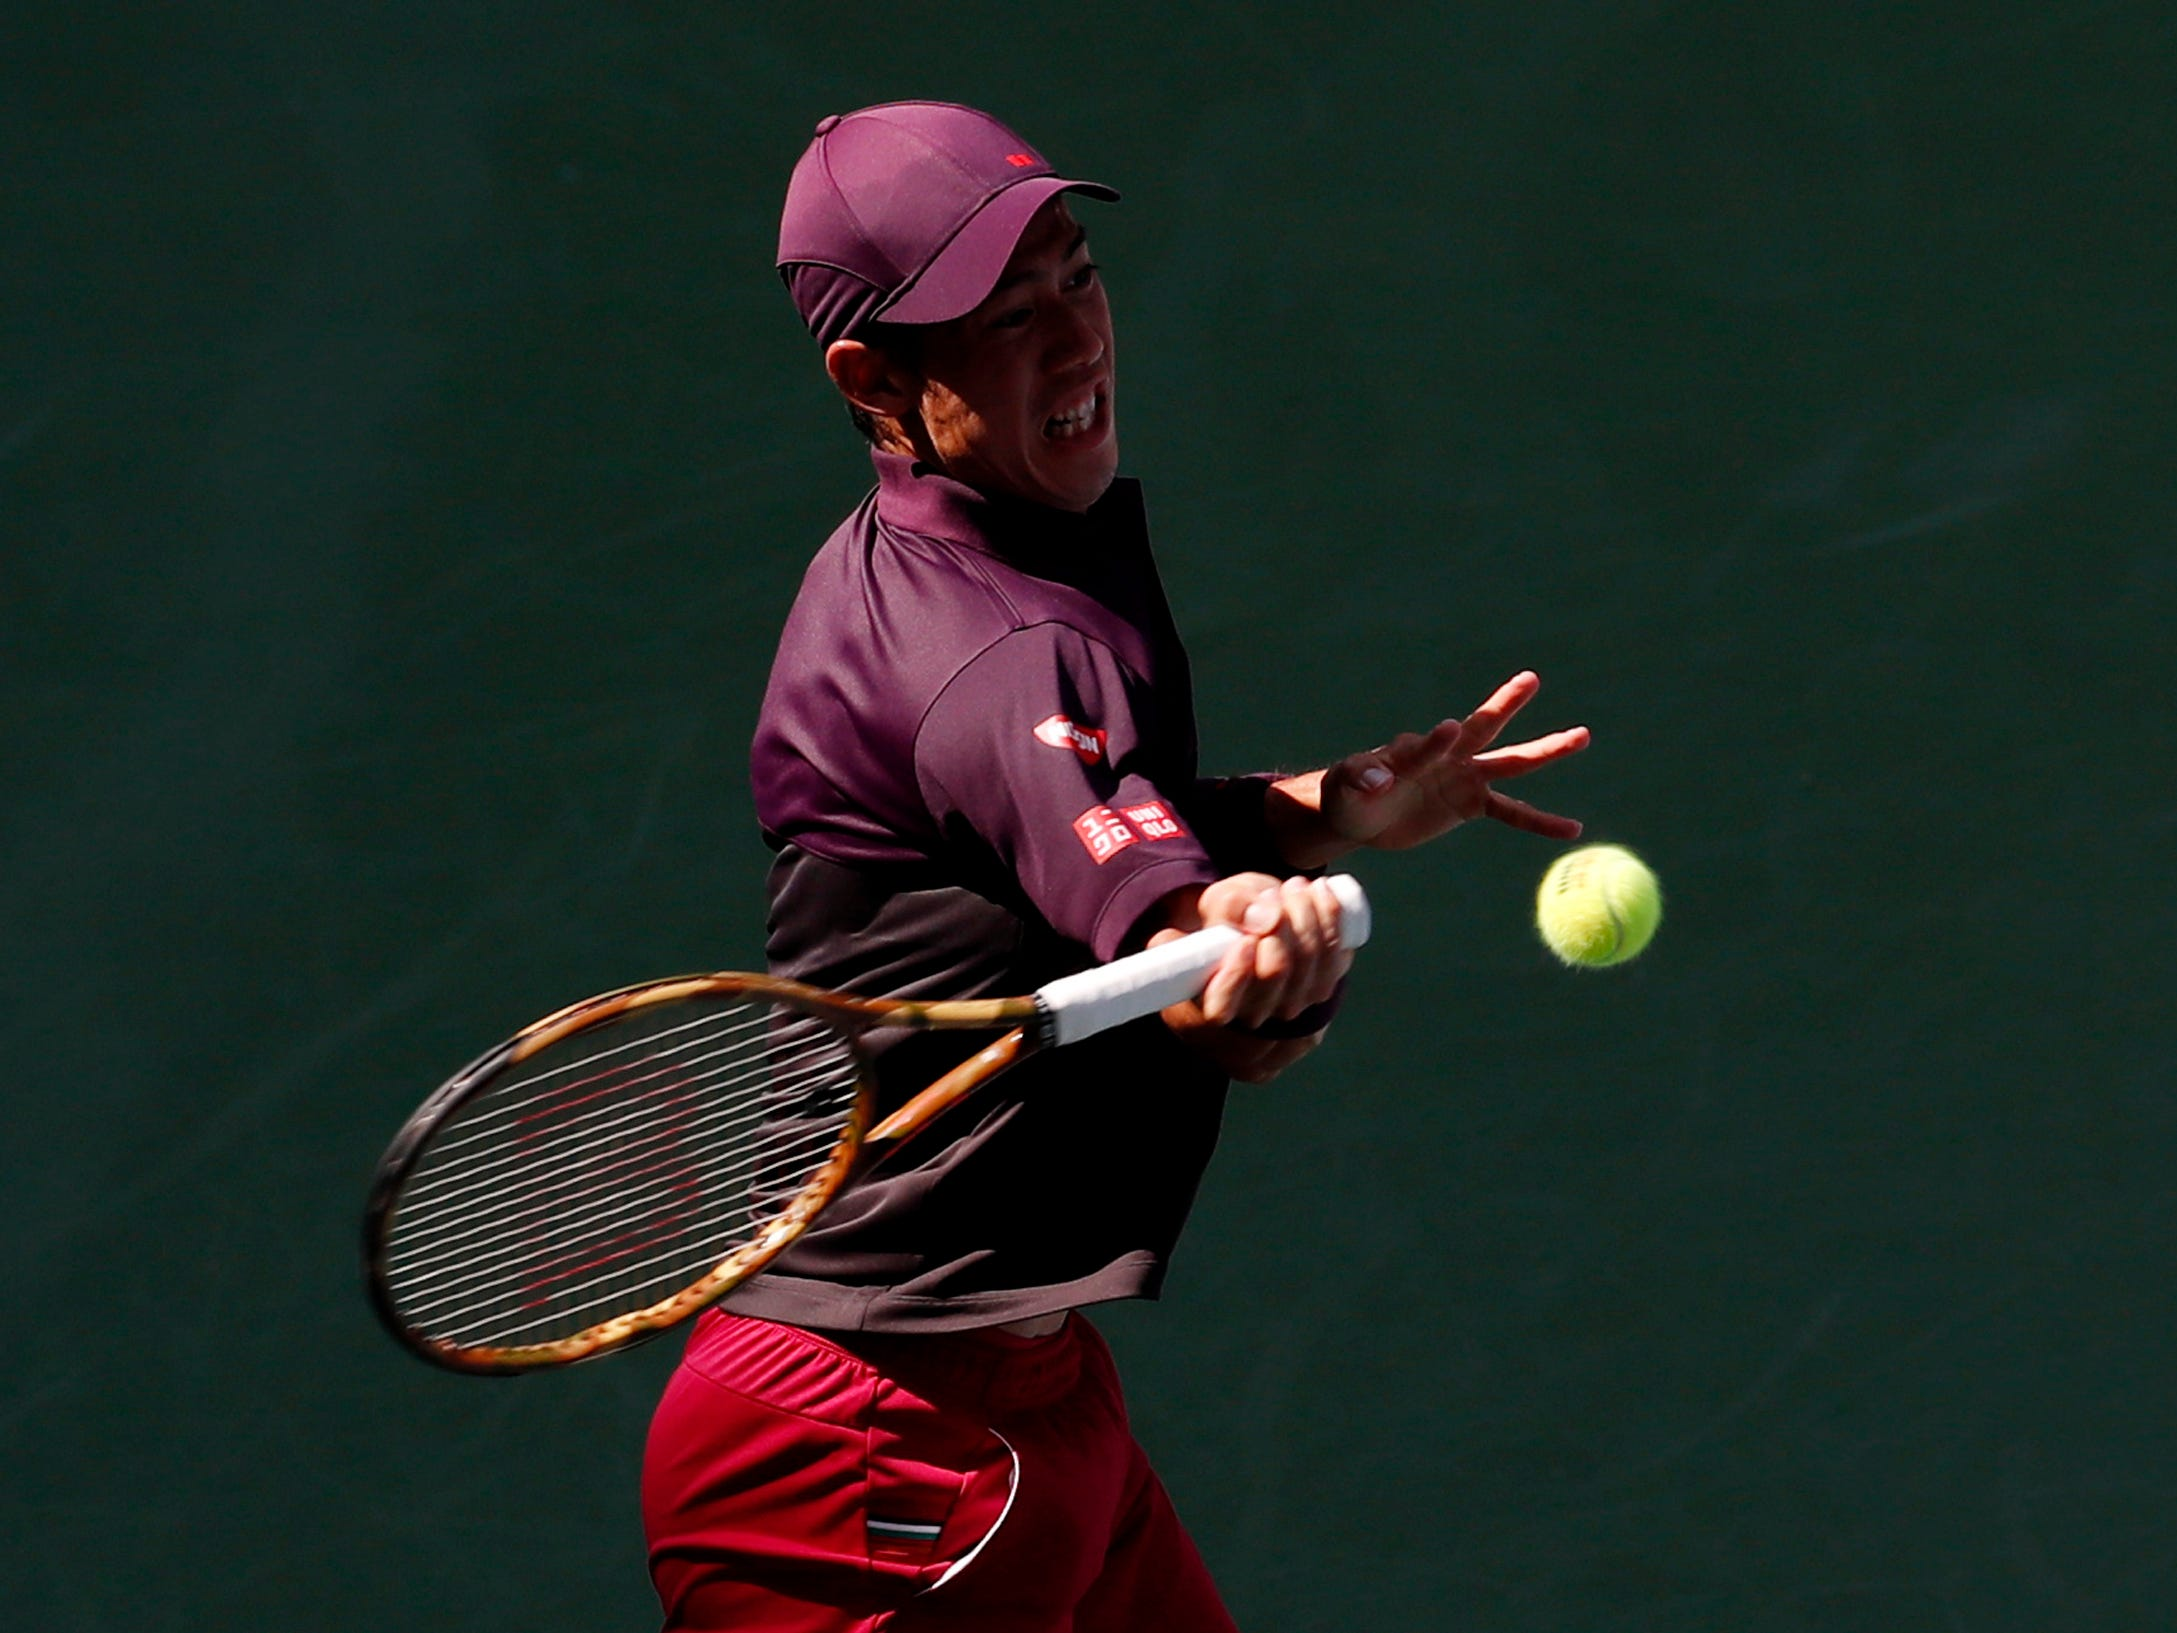 Kei Nishikori of Japan hits to Philipp Kohlschreiber of Germany.